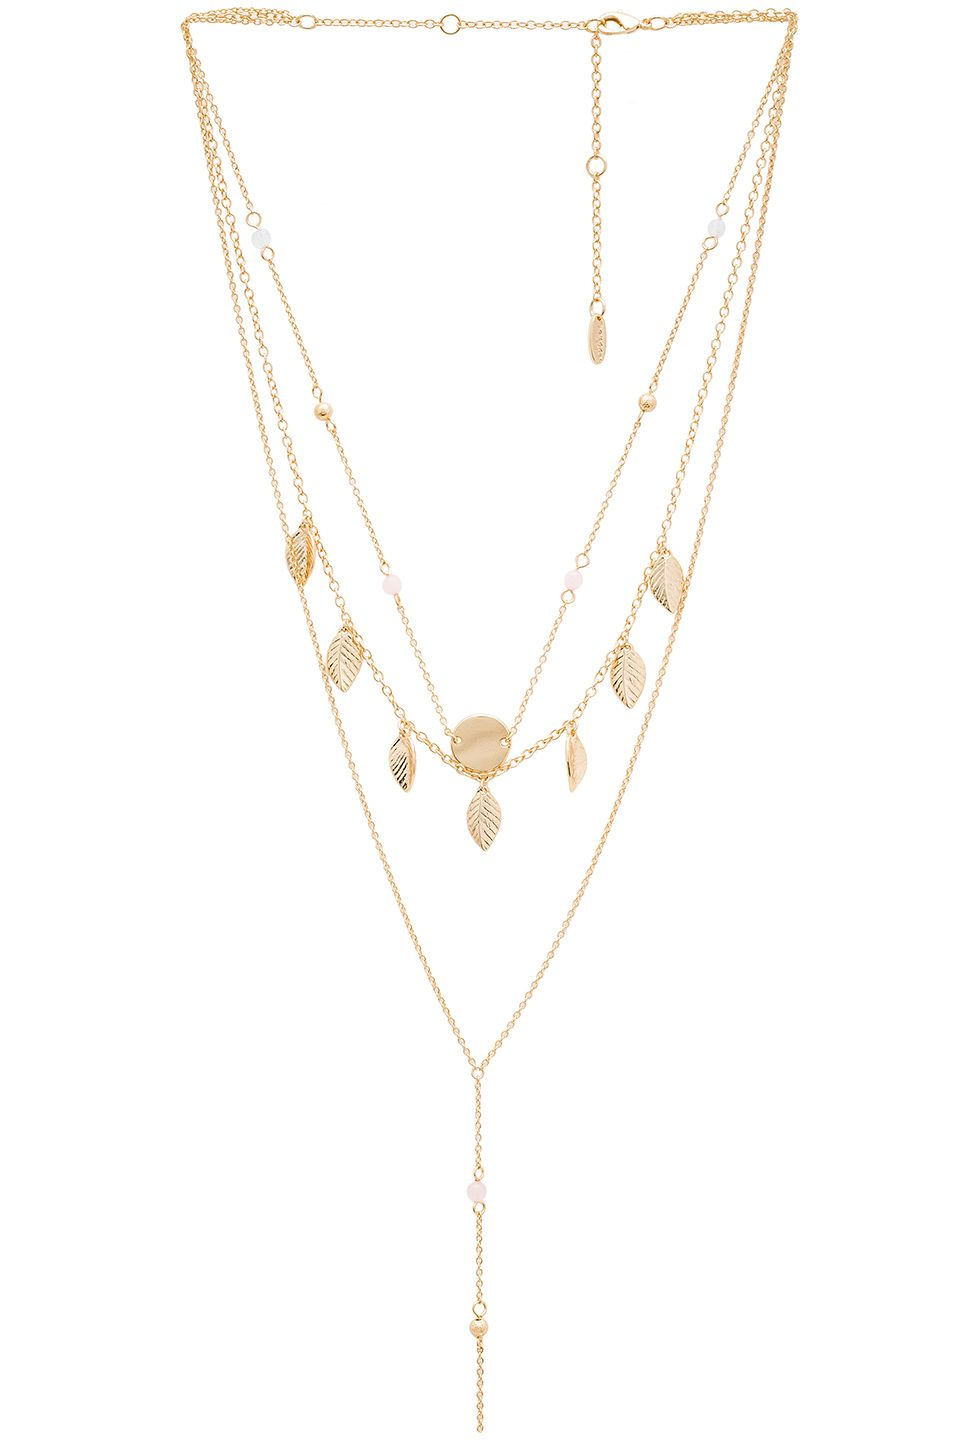 Ettika Fringe Layered Charm Necklace in Metallic Gold UNRueCAj